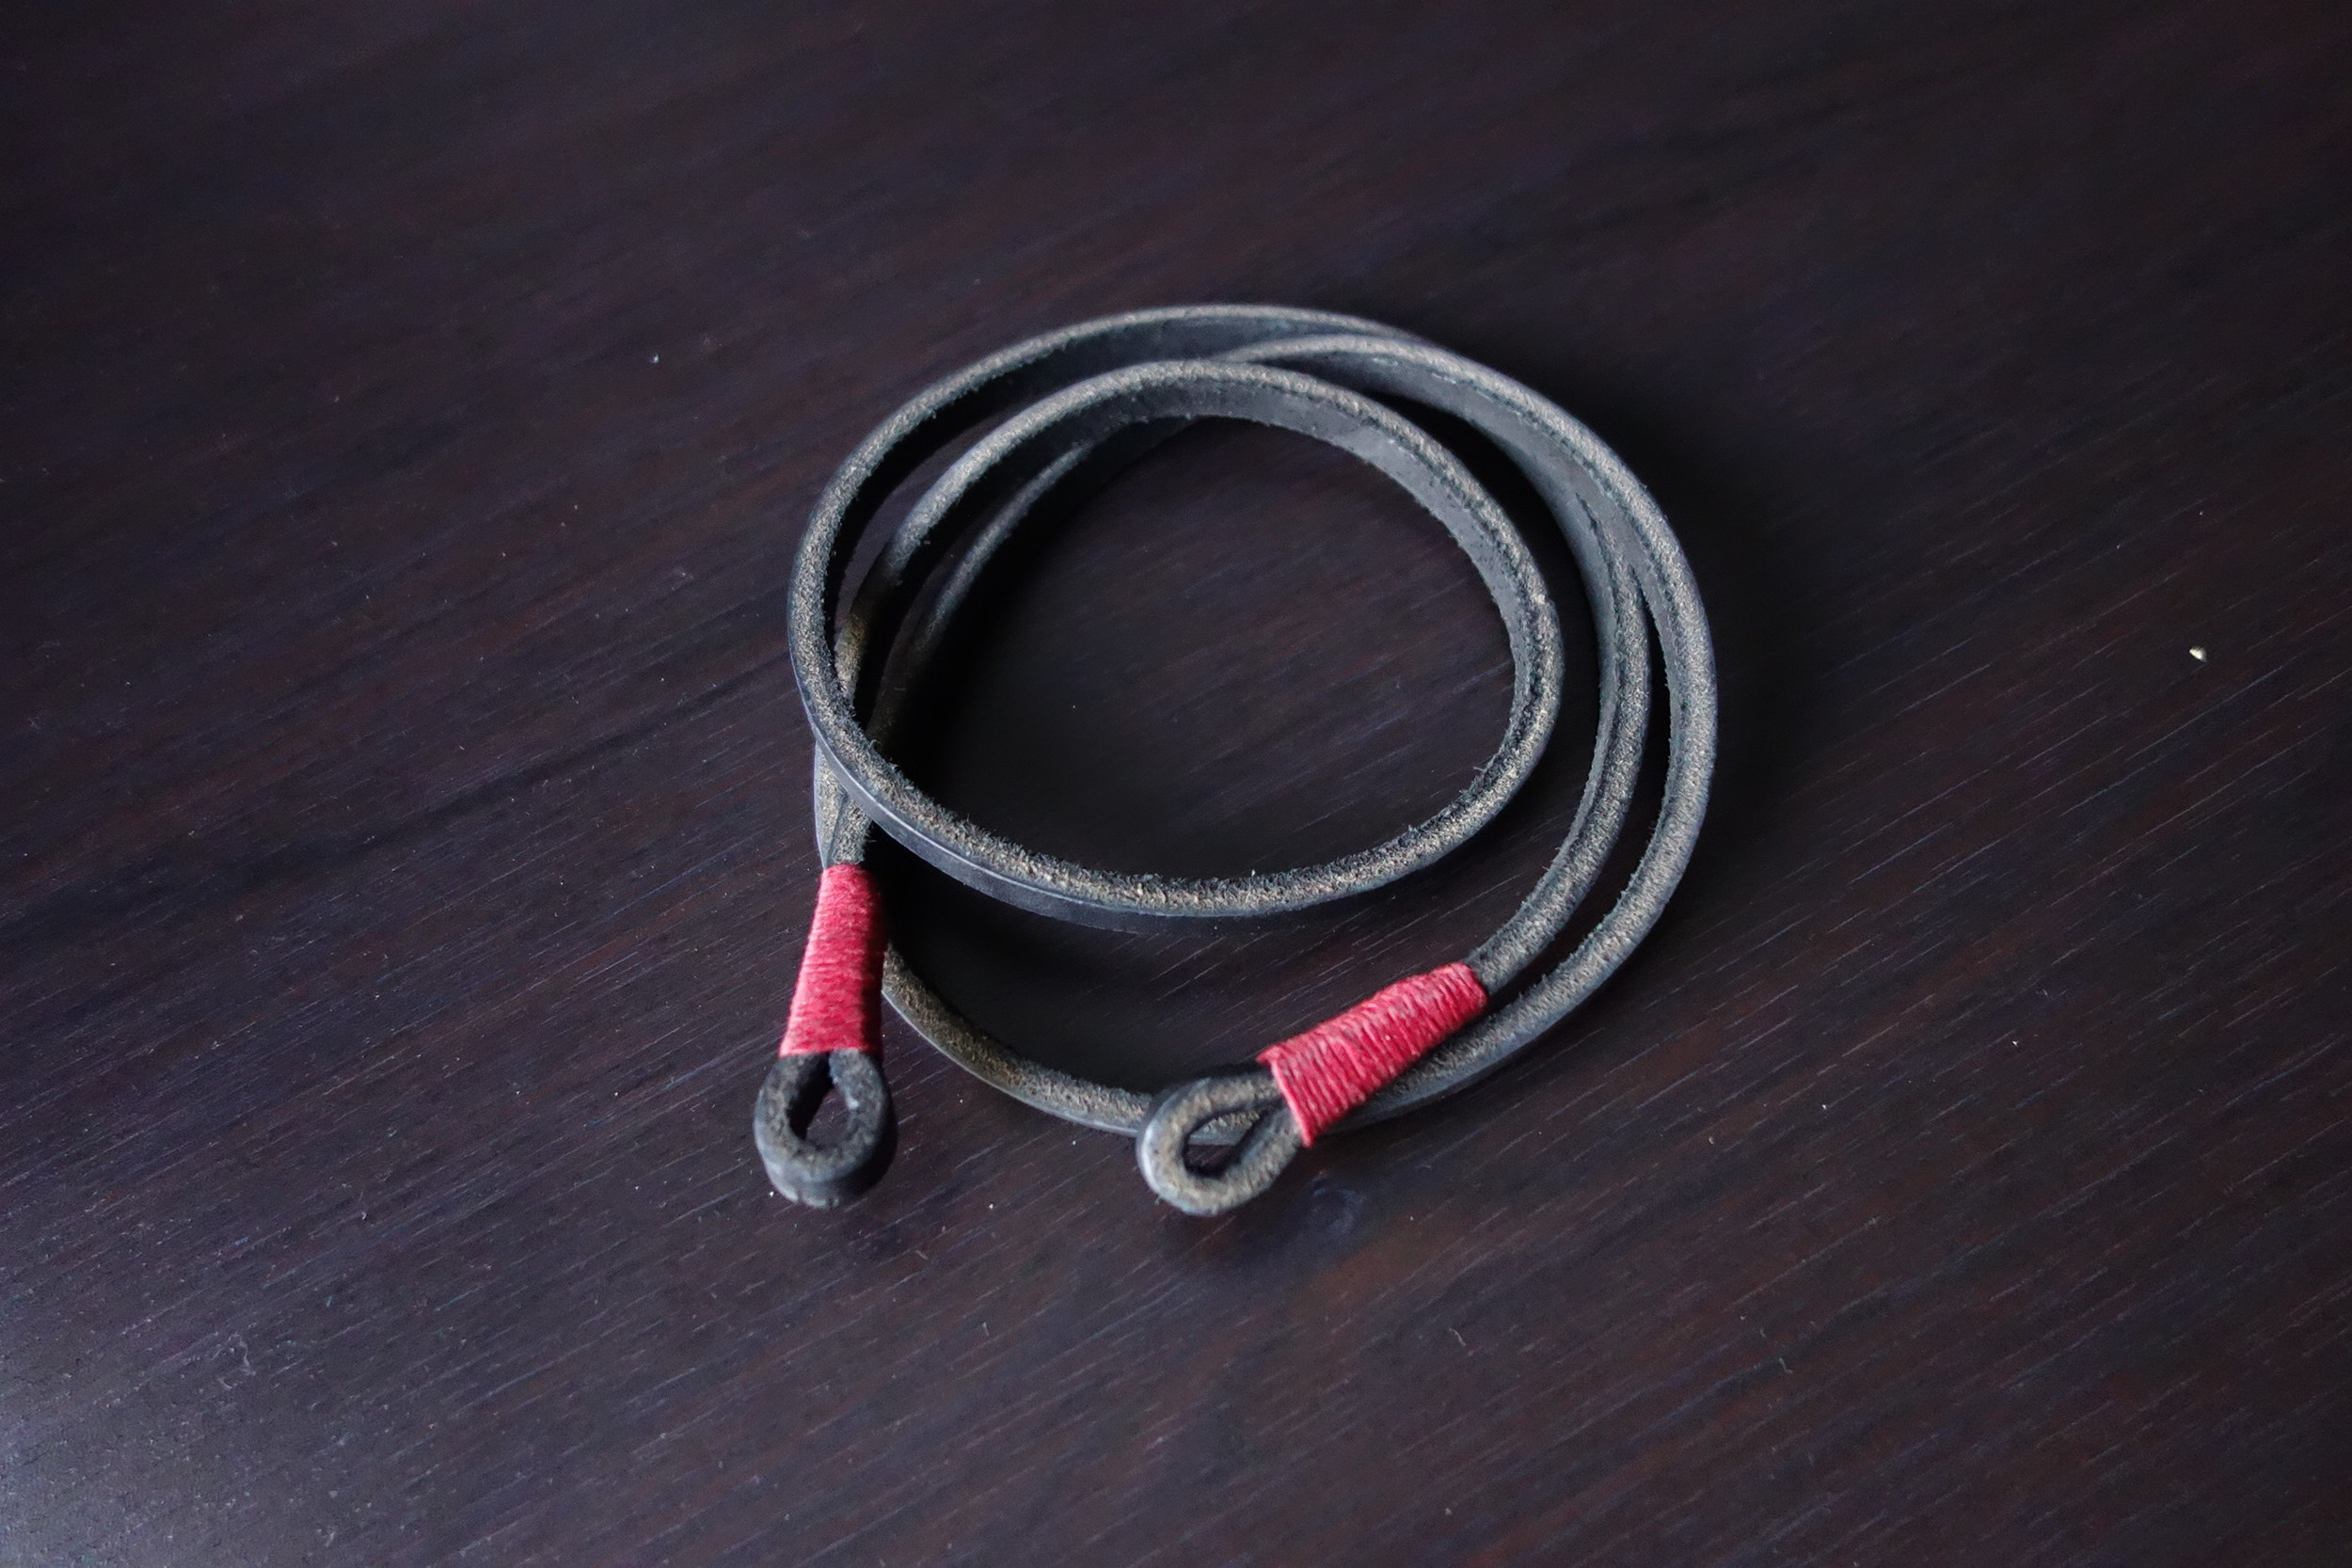 Gordy's Leather Camera Strap // $10 Perfect for a Leica, m4/3, or any smaller camera!